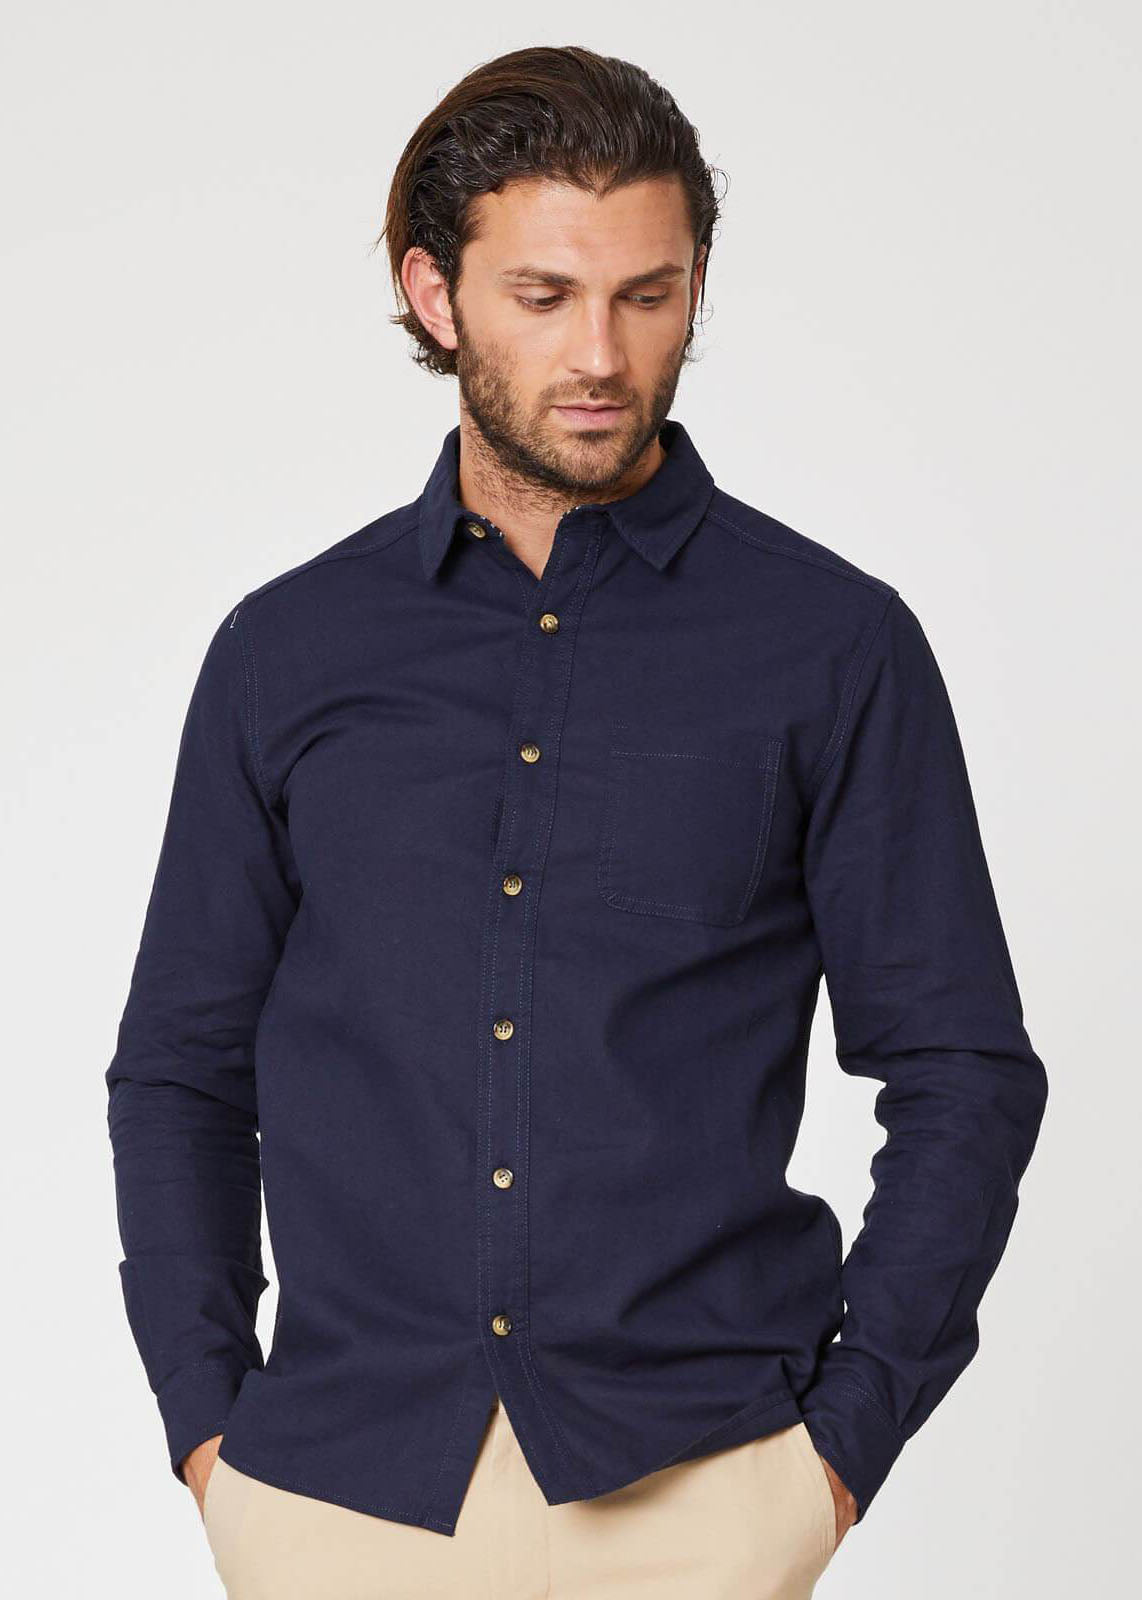 Avro Shirt in Navy-Shirt-Sancho's Dress